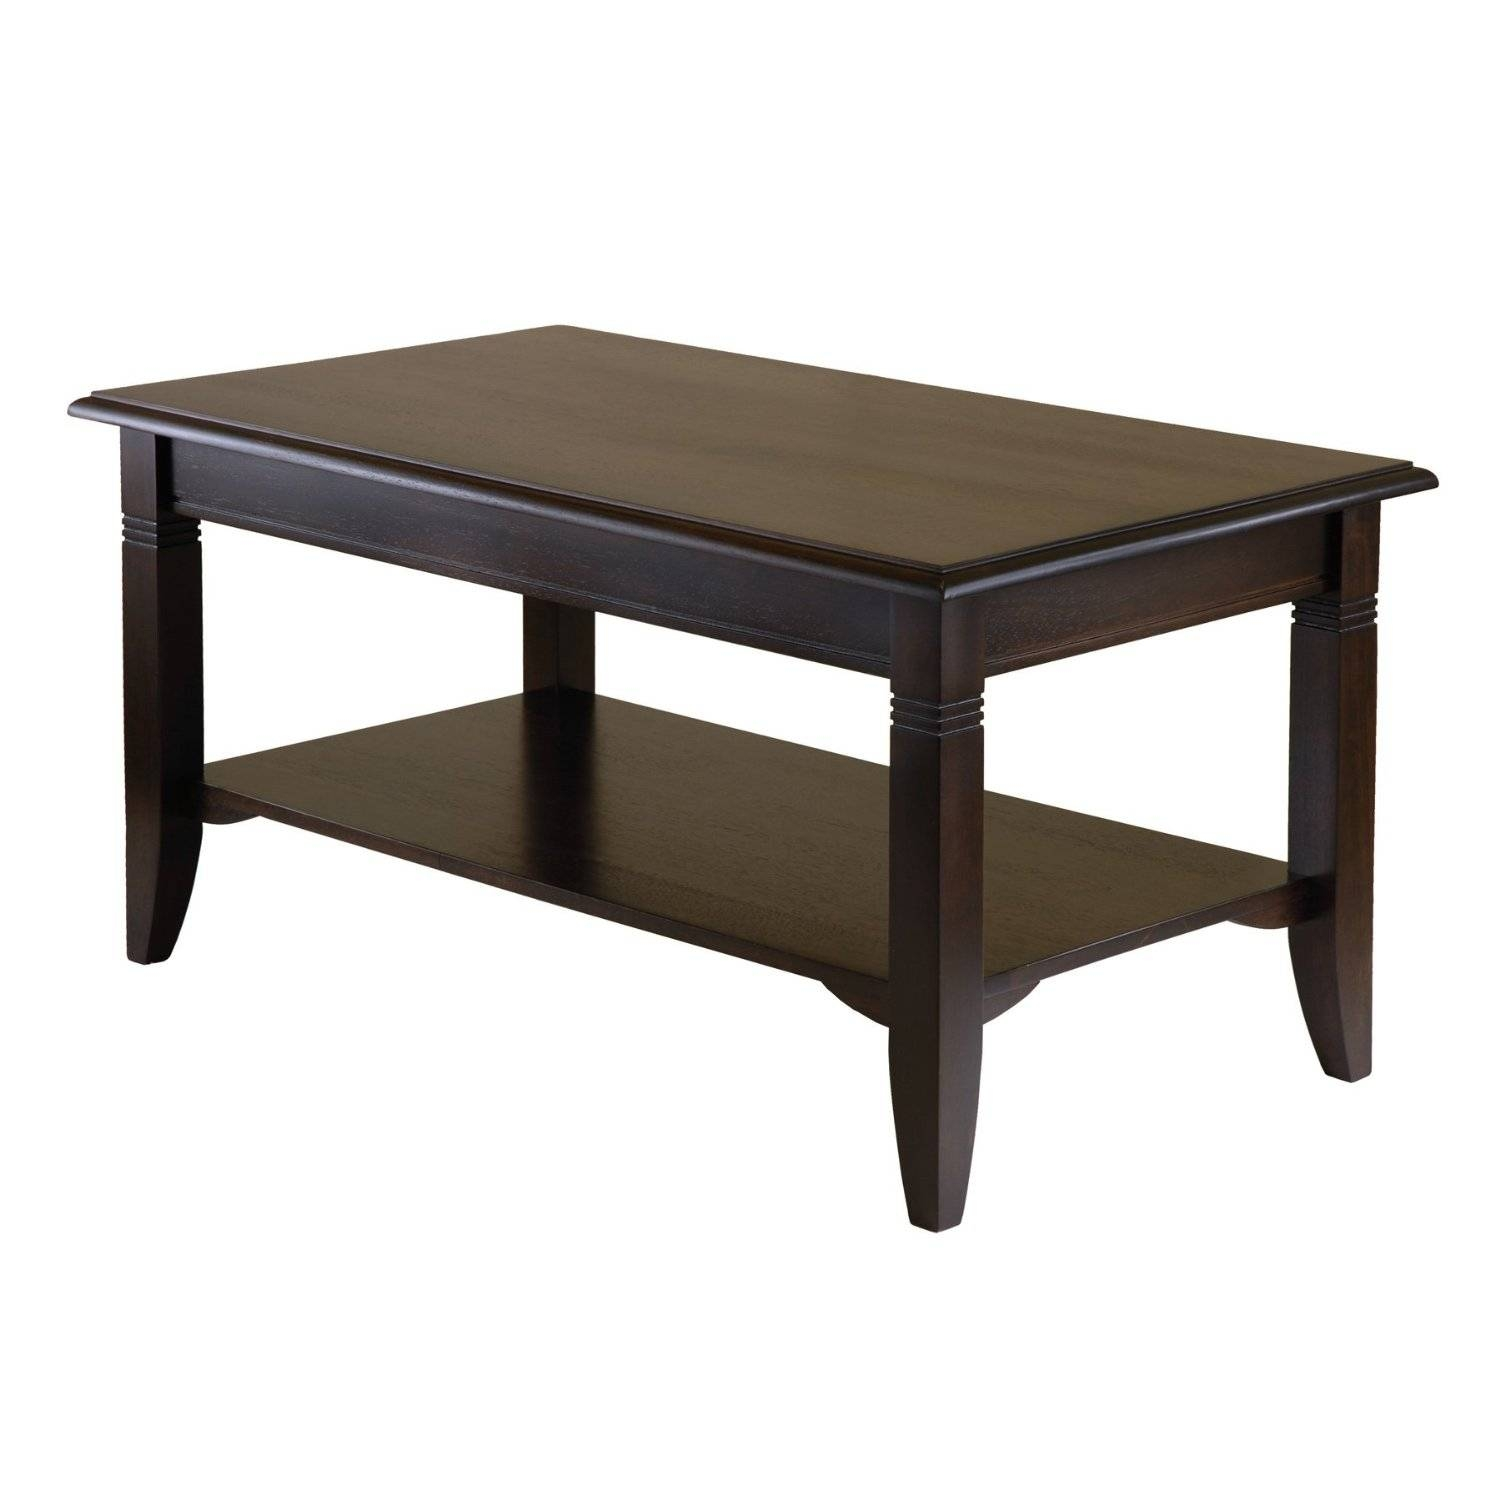 Square Mahogany Coffee Table With Storage And Shelves Painted With throughout Coffee Tables With Shelves (Image 29 of 30)